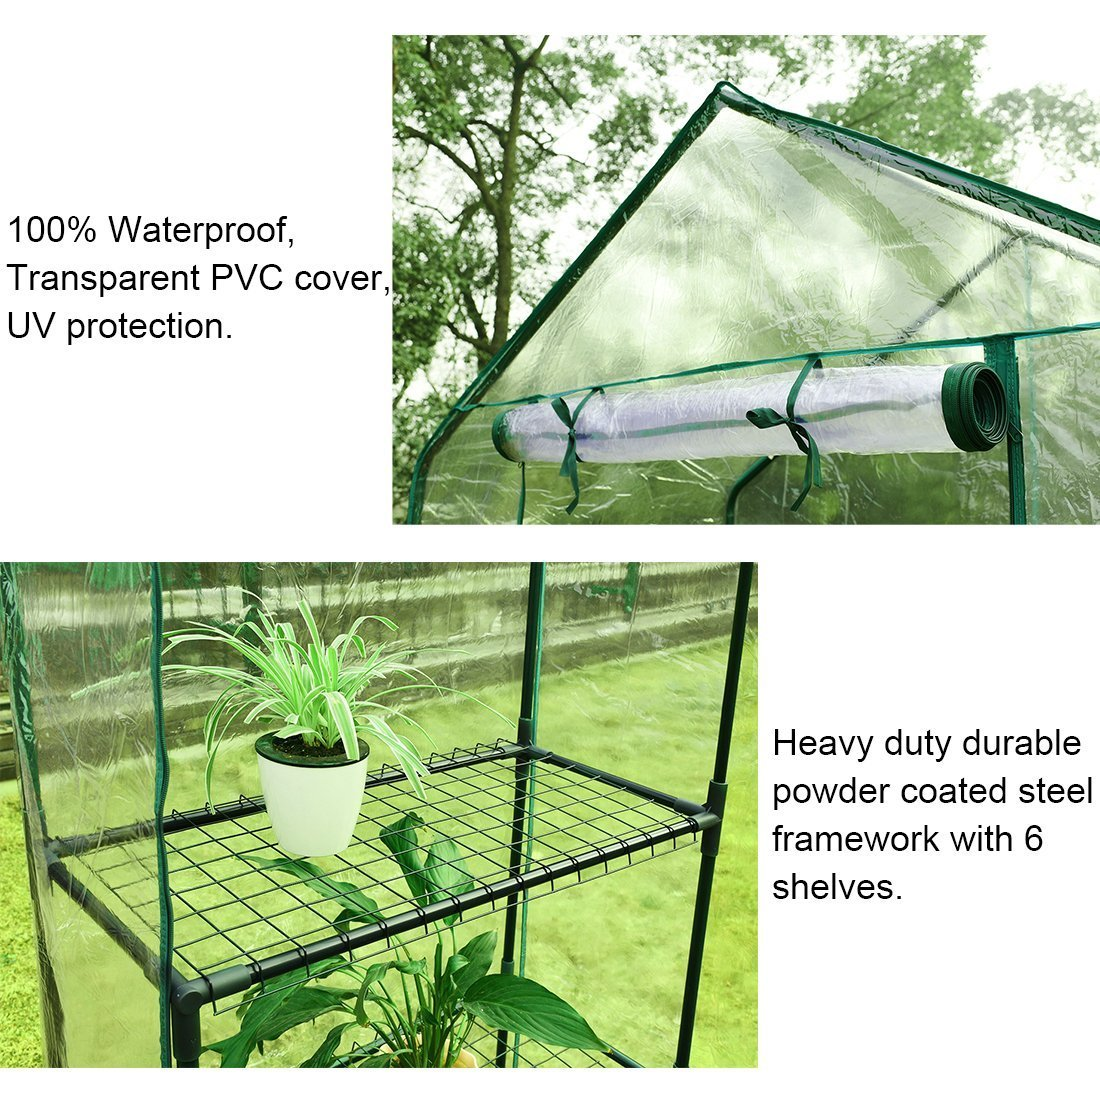 Quictent Greenhouse Mini Walk-in 3 tiers 6 shelves 102lbs Max Weight Capacity Portable Plant Garden Outdoor Green House 56''x29''x77'' by Quictent (Image #2)